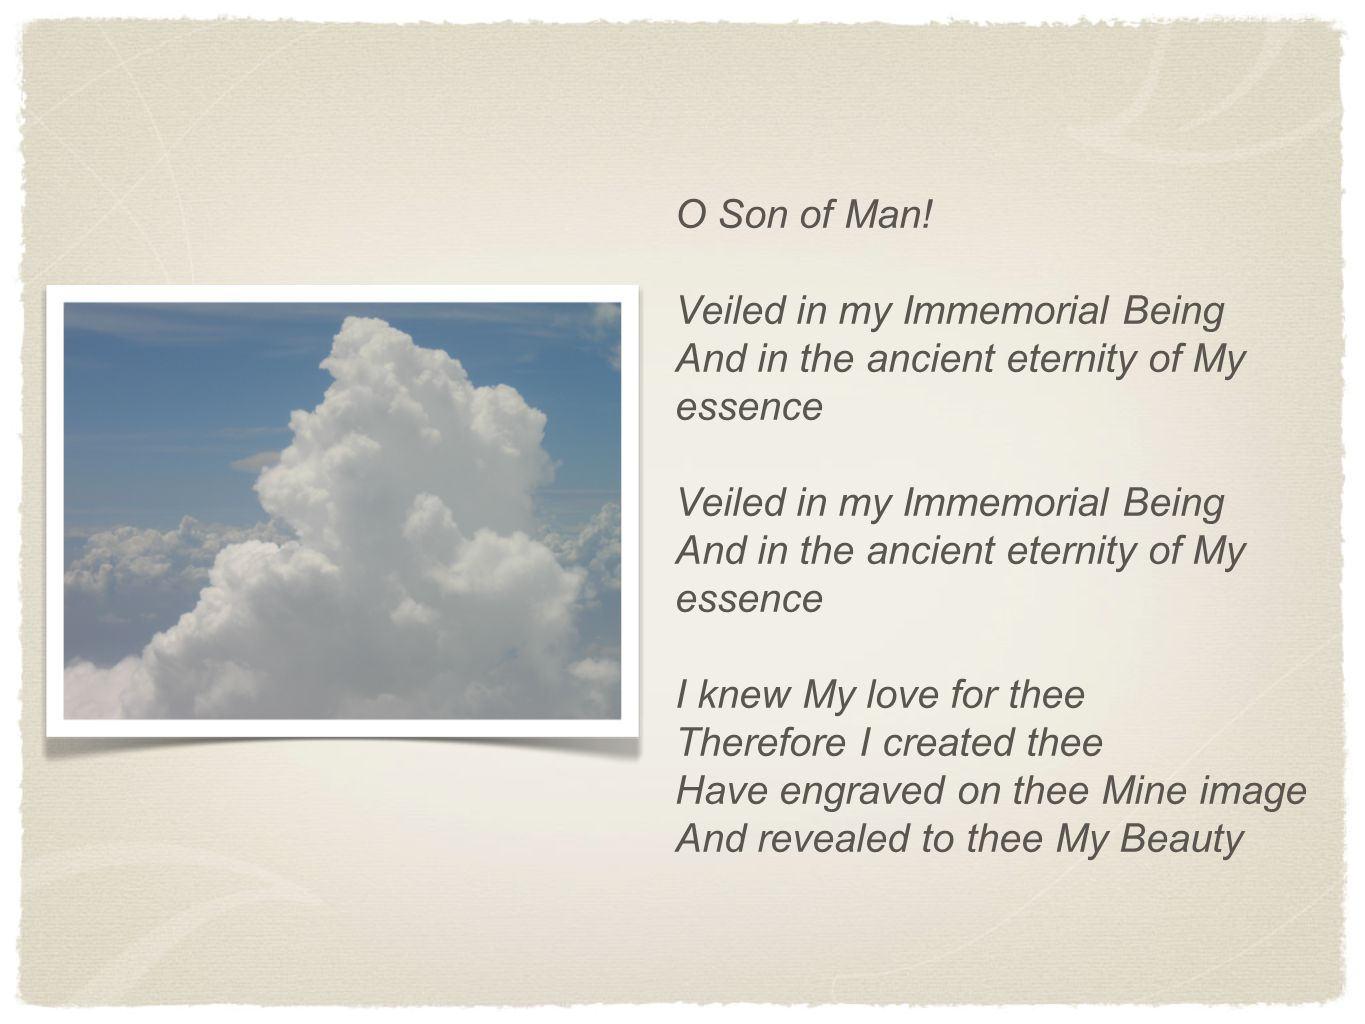 O Son of Man! Veiled in my Immemorial Being And in the ancient eternity of My essence Veiled in my Immemorial Being And in the ancient eternity of My